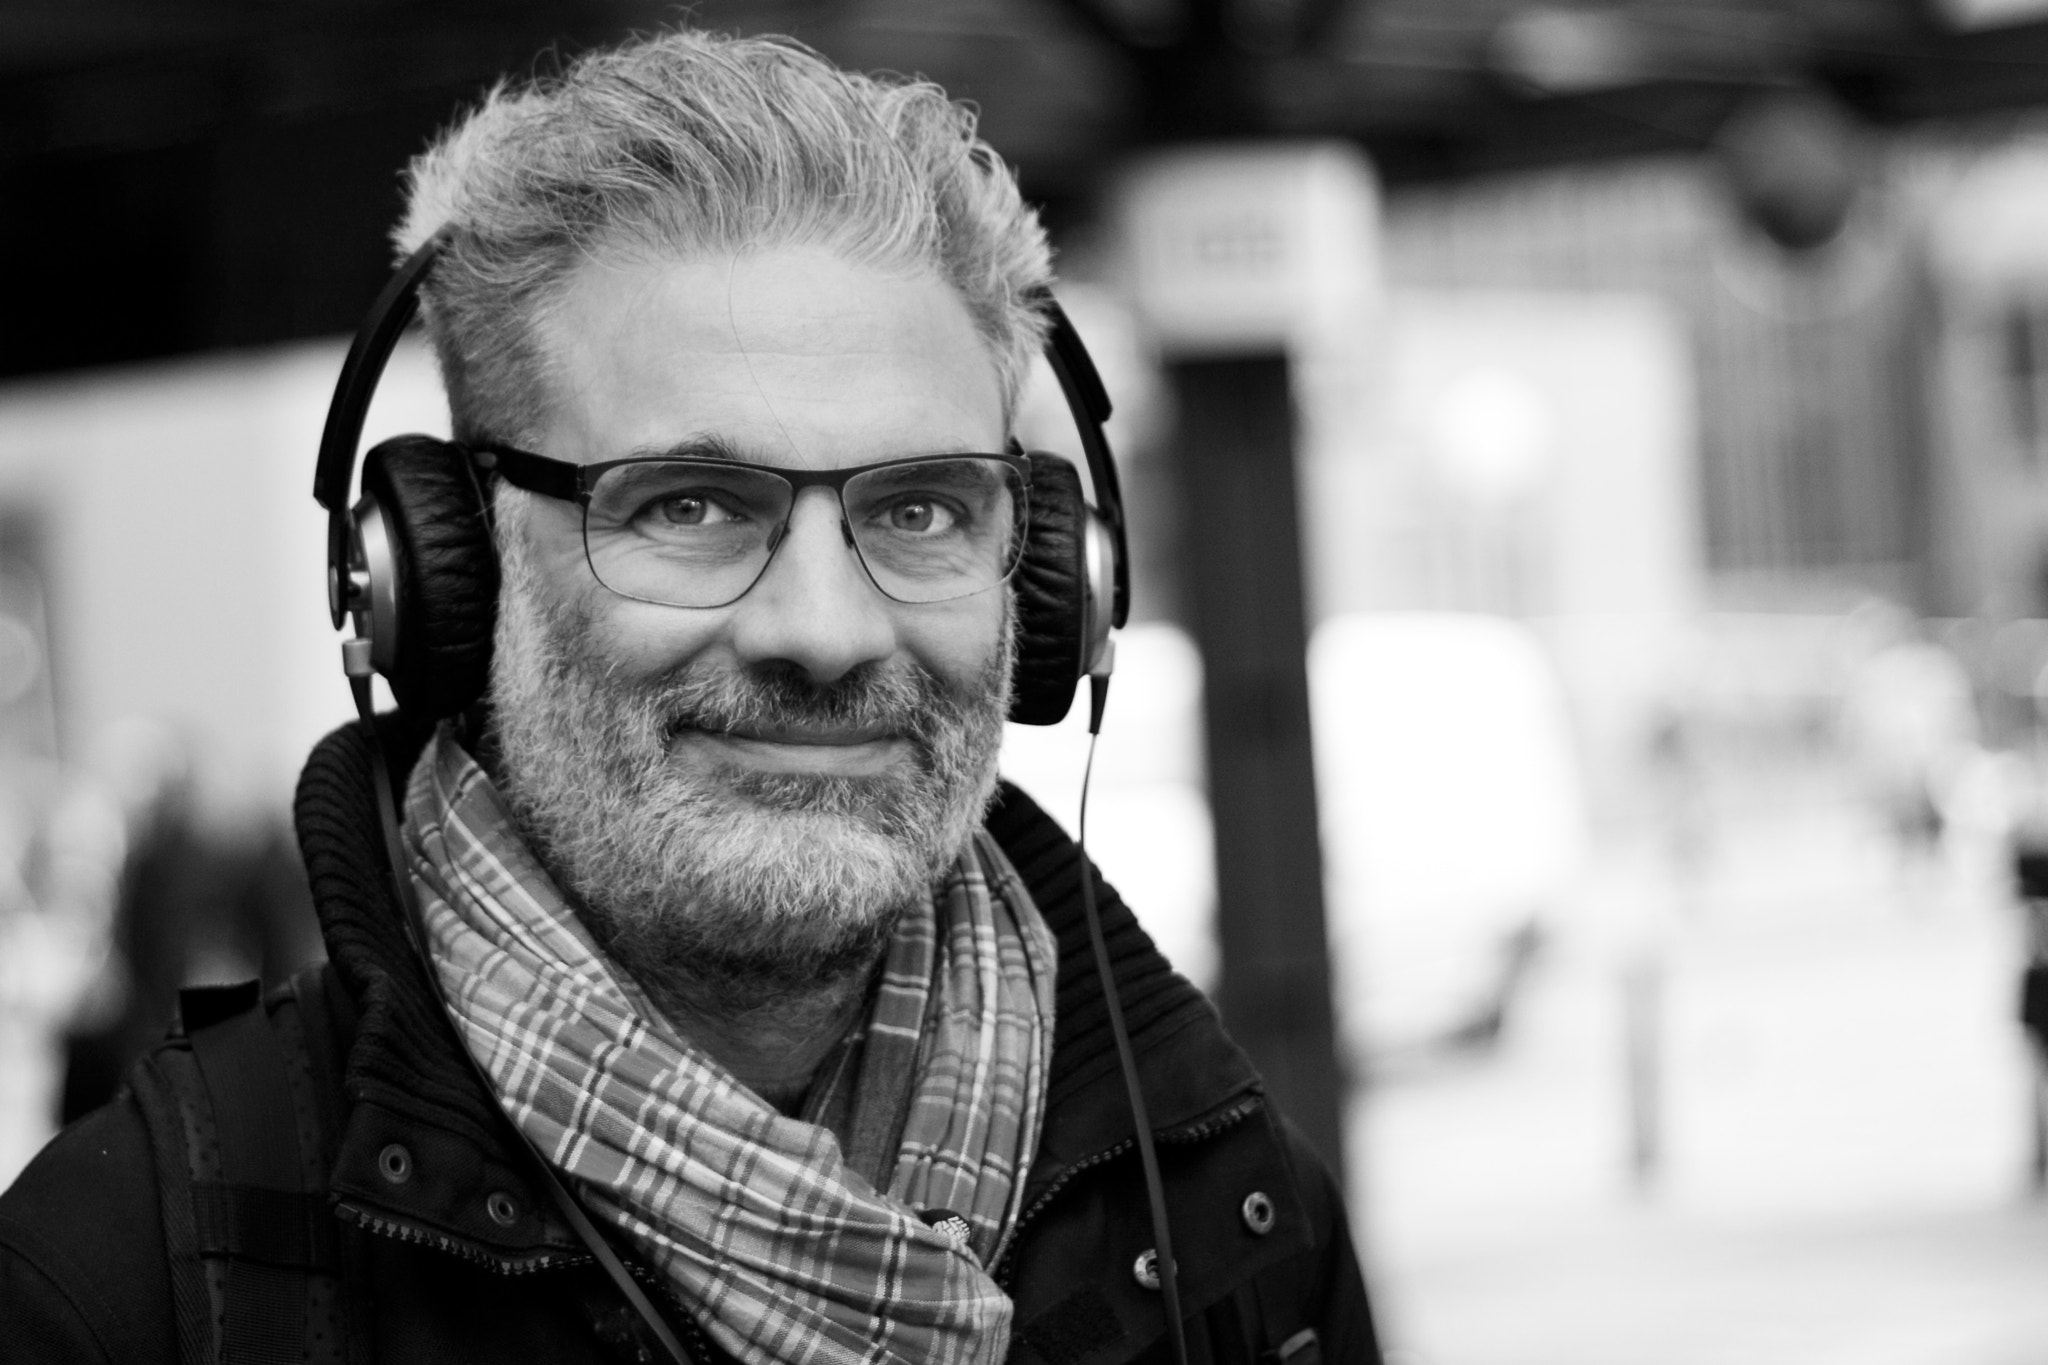 Photograph headphones by Eike Freywald on 500px